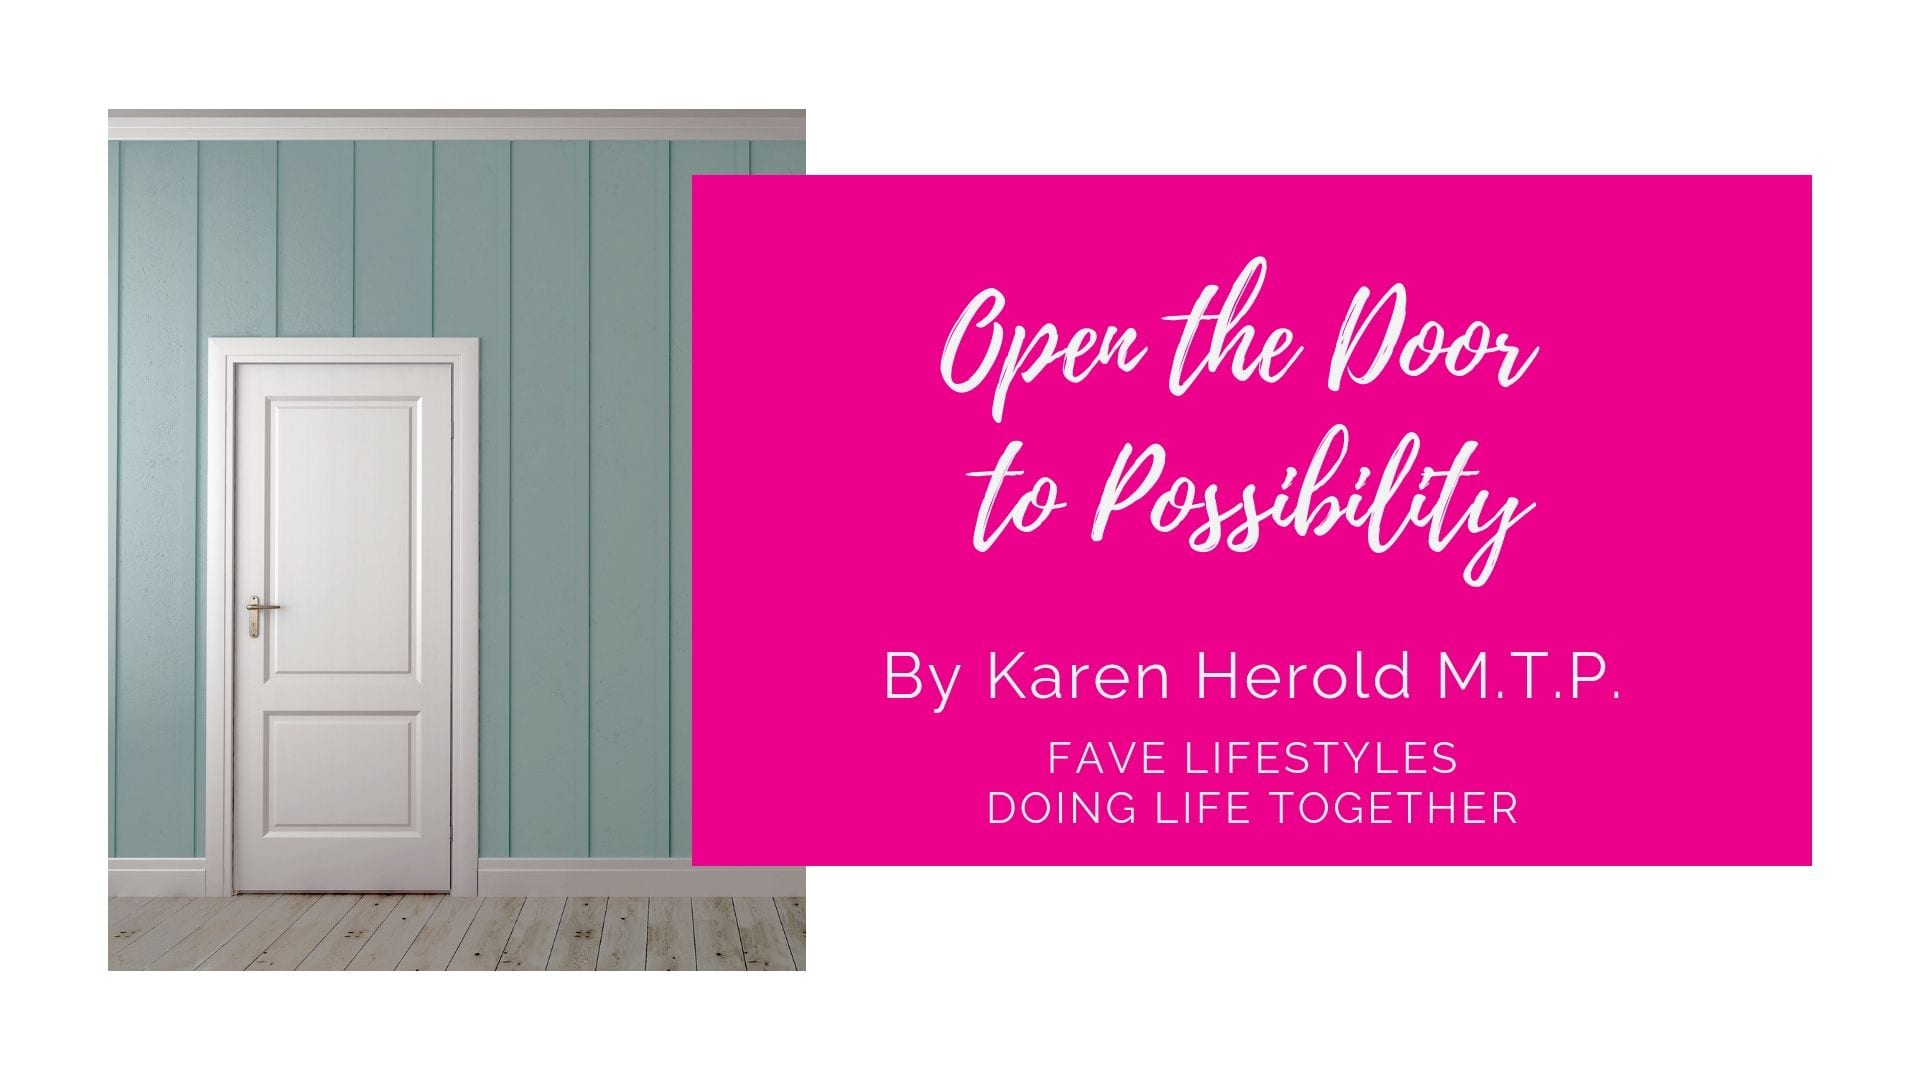 Open the Door to Possibility